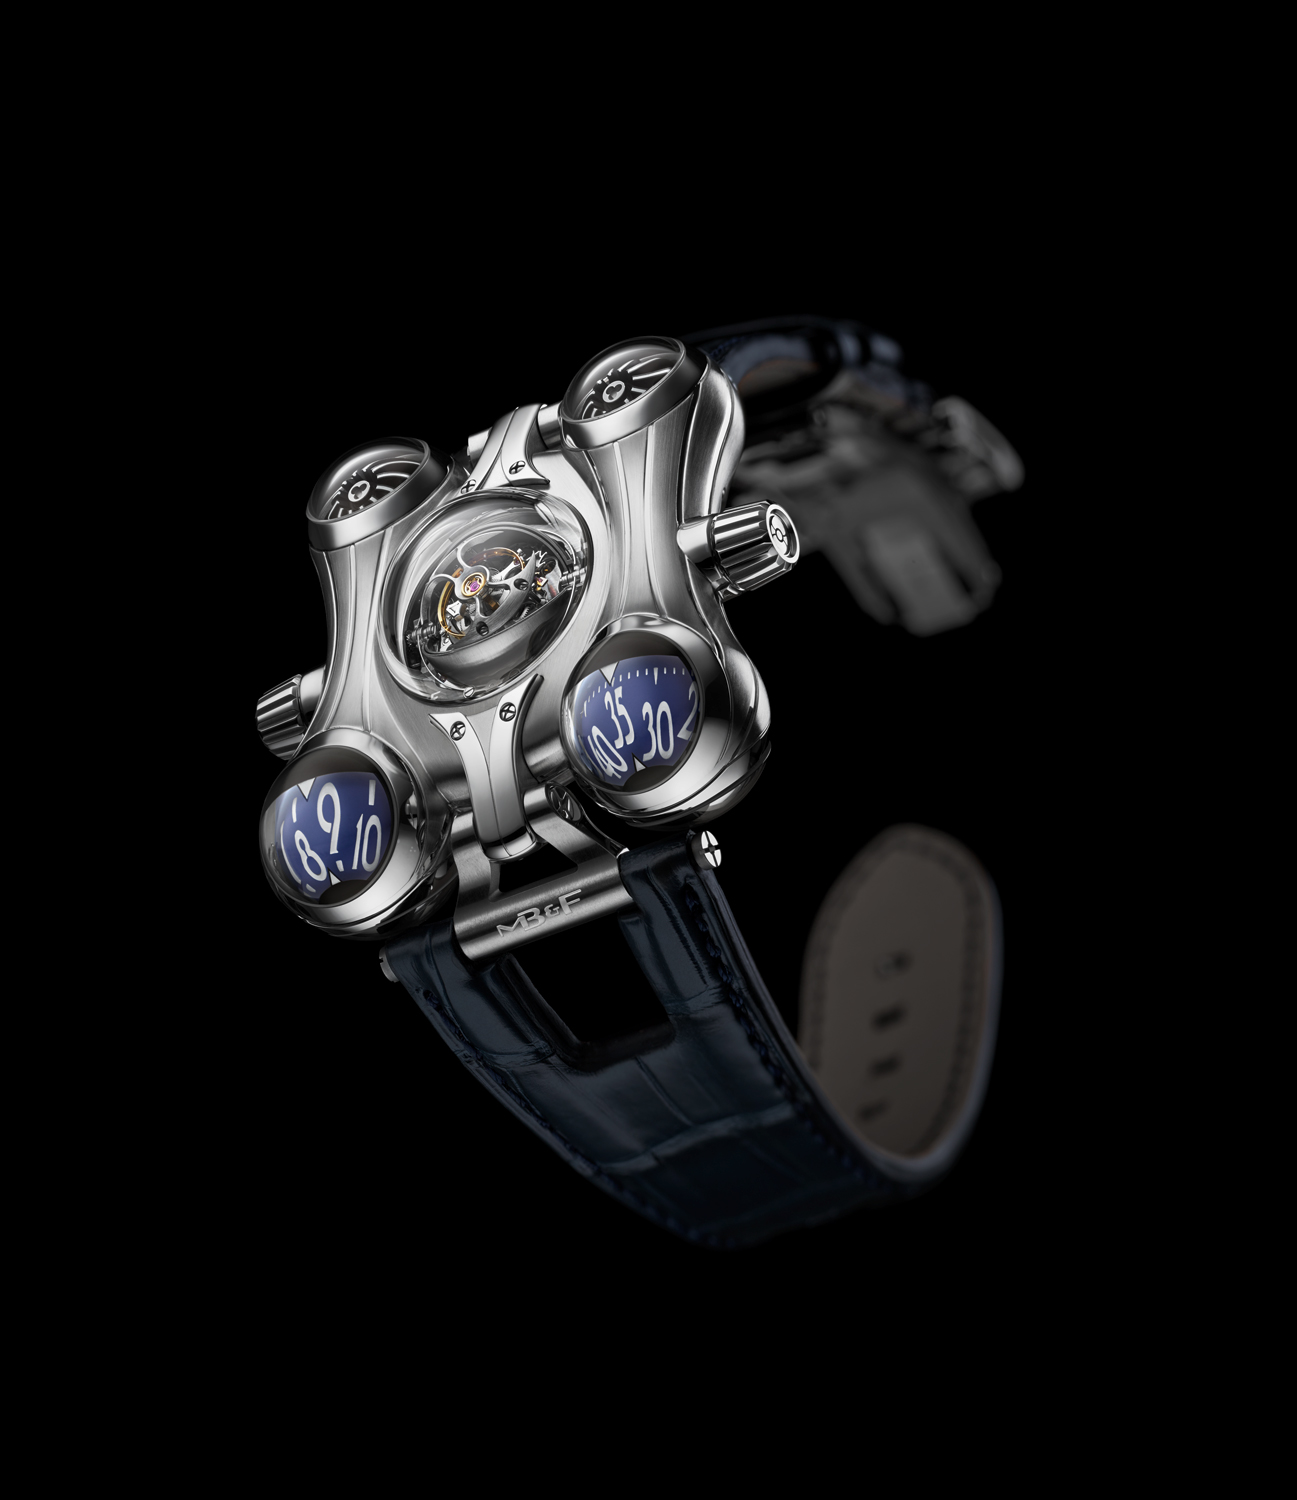 MB&F Horological Machine No.6 Final Edition open